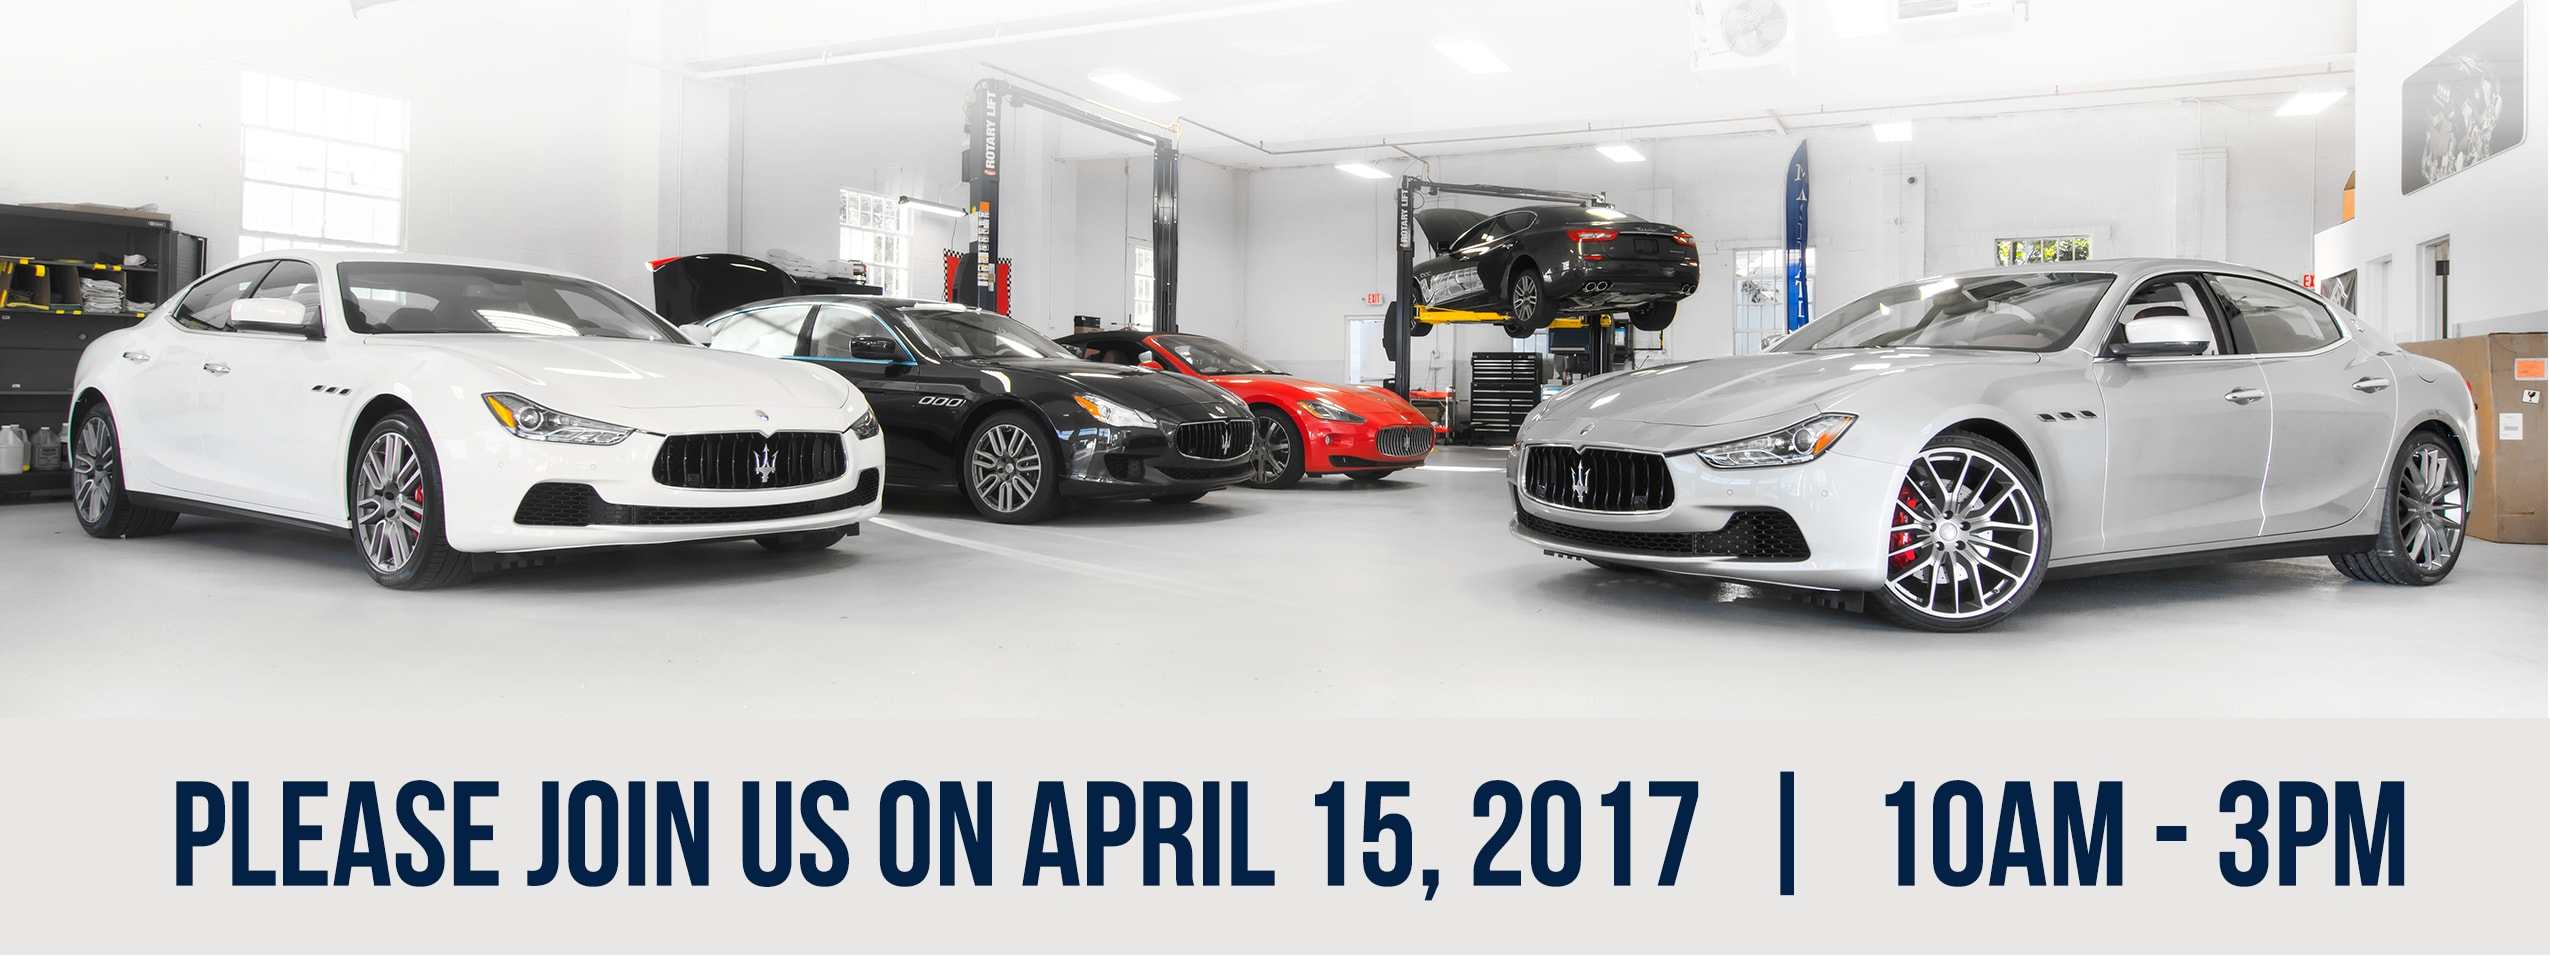 Maserati New Owners Service Clinic on April 15th